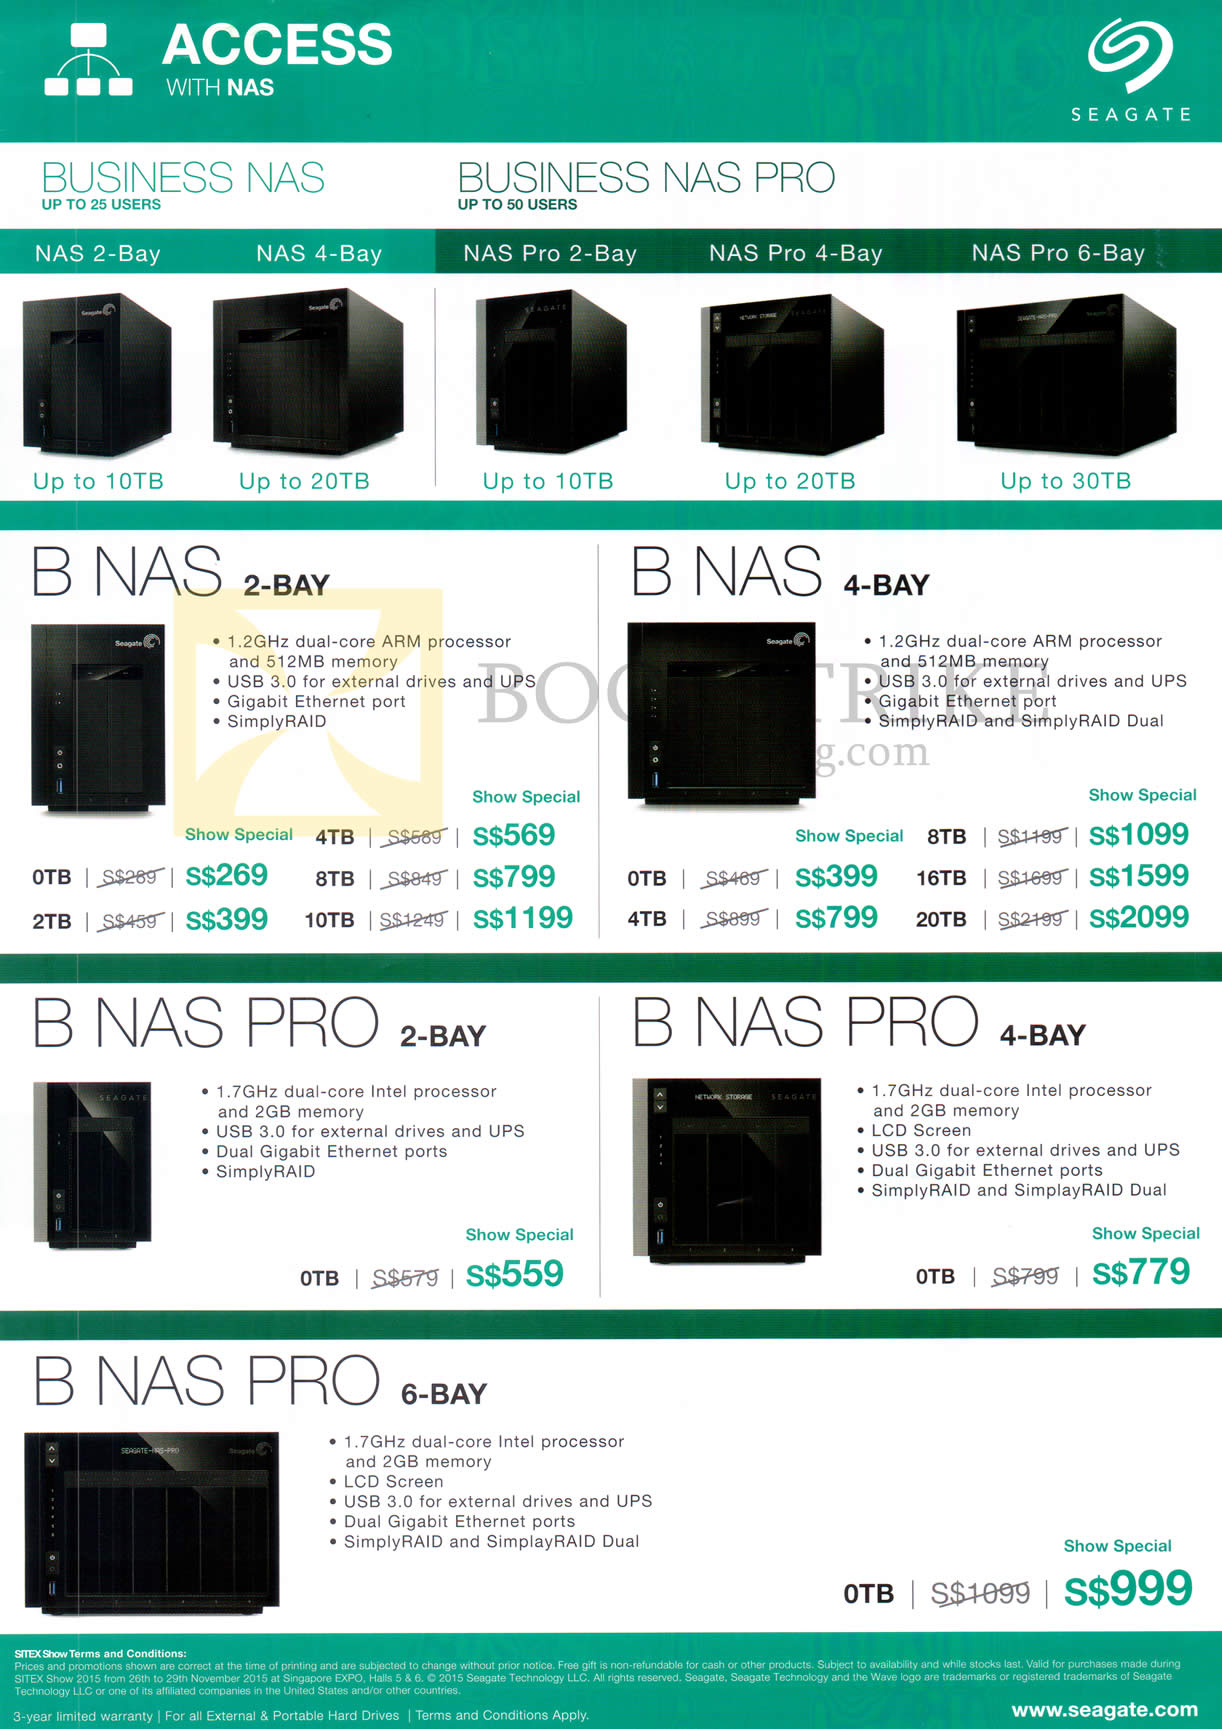 SITEX 2015 price list image brochure of Seagate Business NAS, NAS Pro, 2Bay, 4Bay, 6Bay